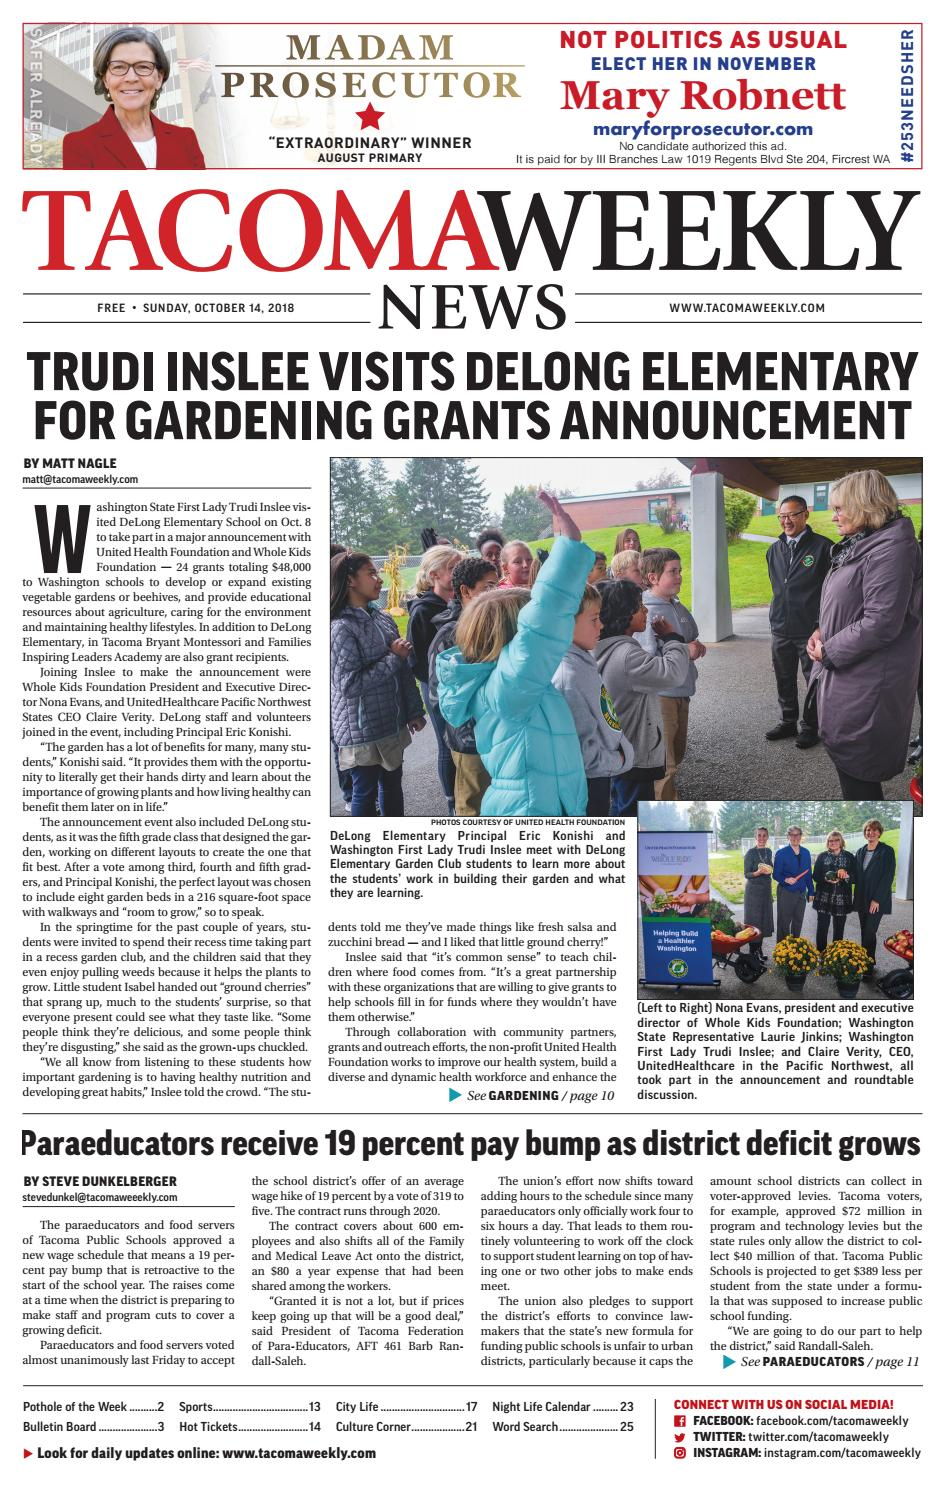 TW_10 14 18 by Tacoma Weekly News - issuu